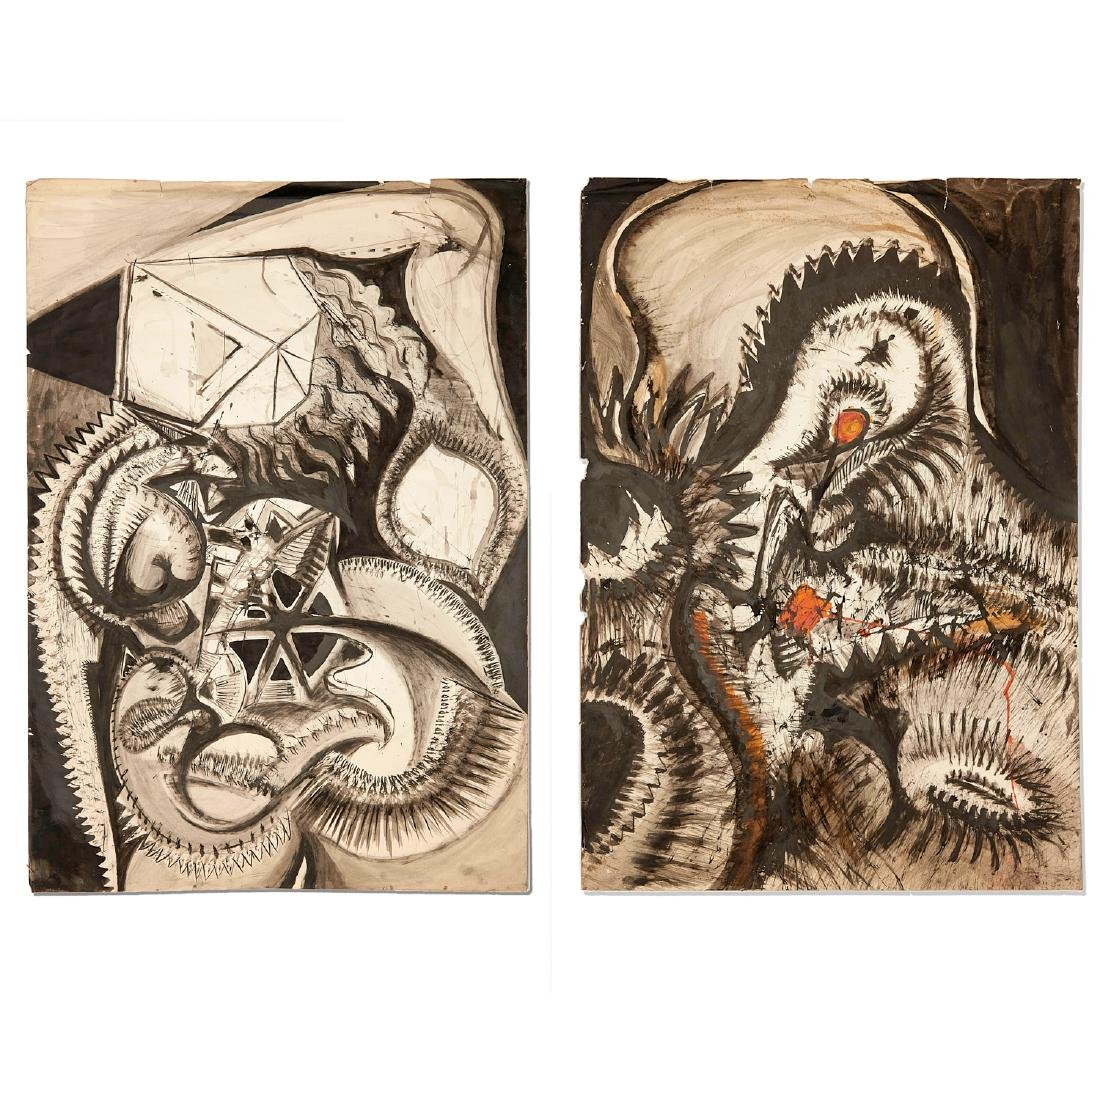 Jean Jacques Lebel, diptych drawing, 1958